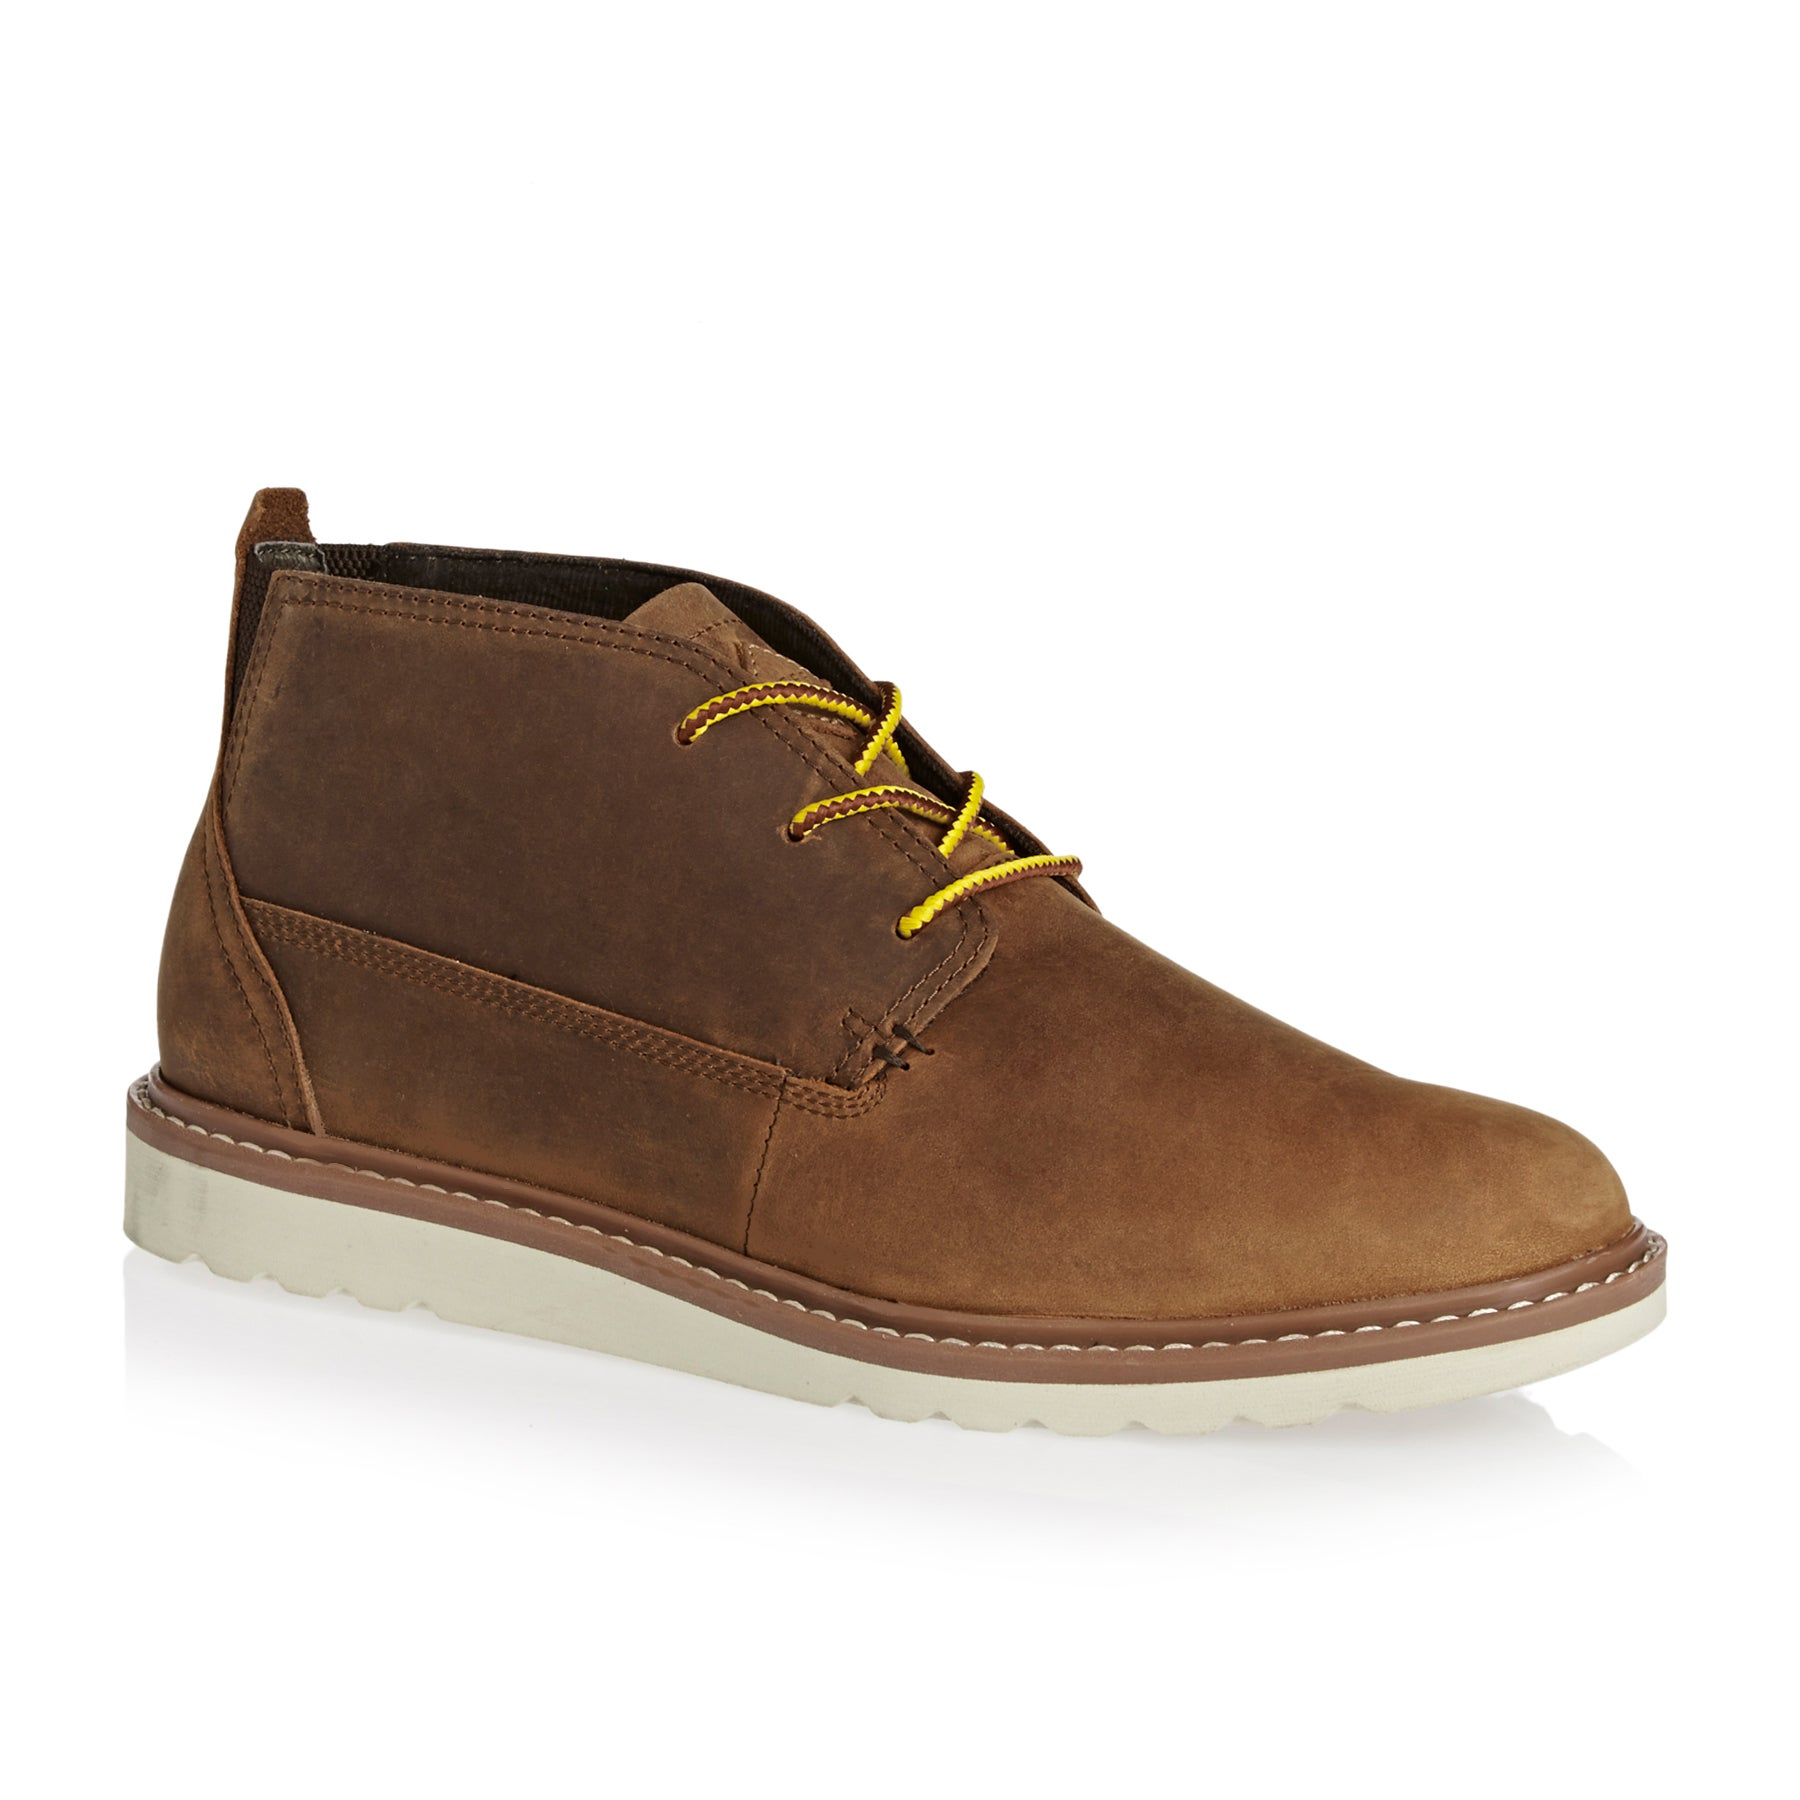 Reef Voyage LE ブーツ - Brown